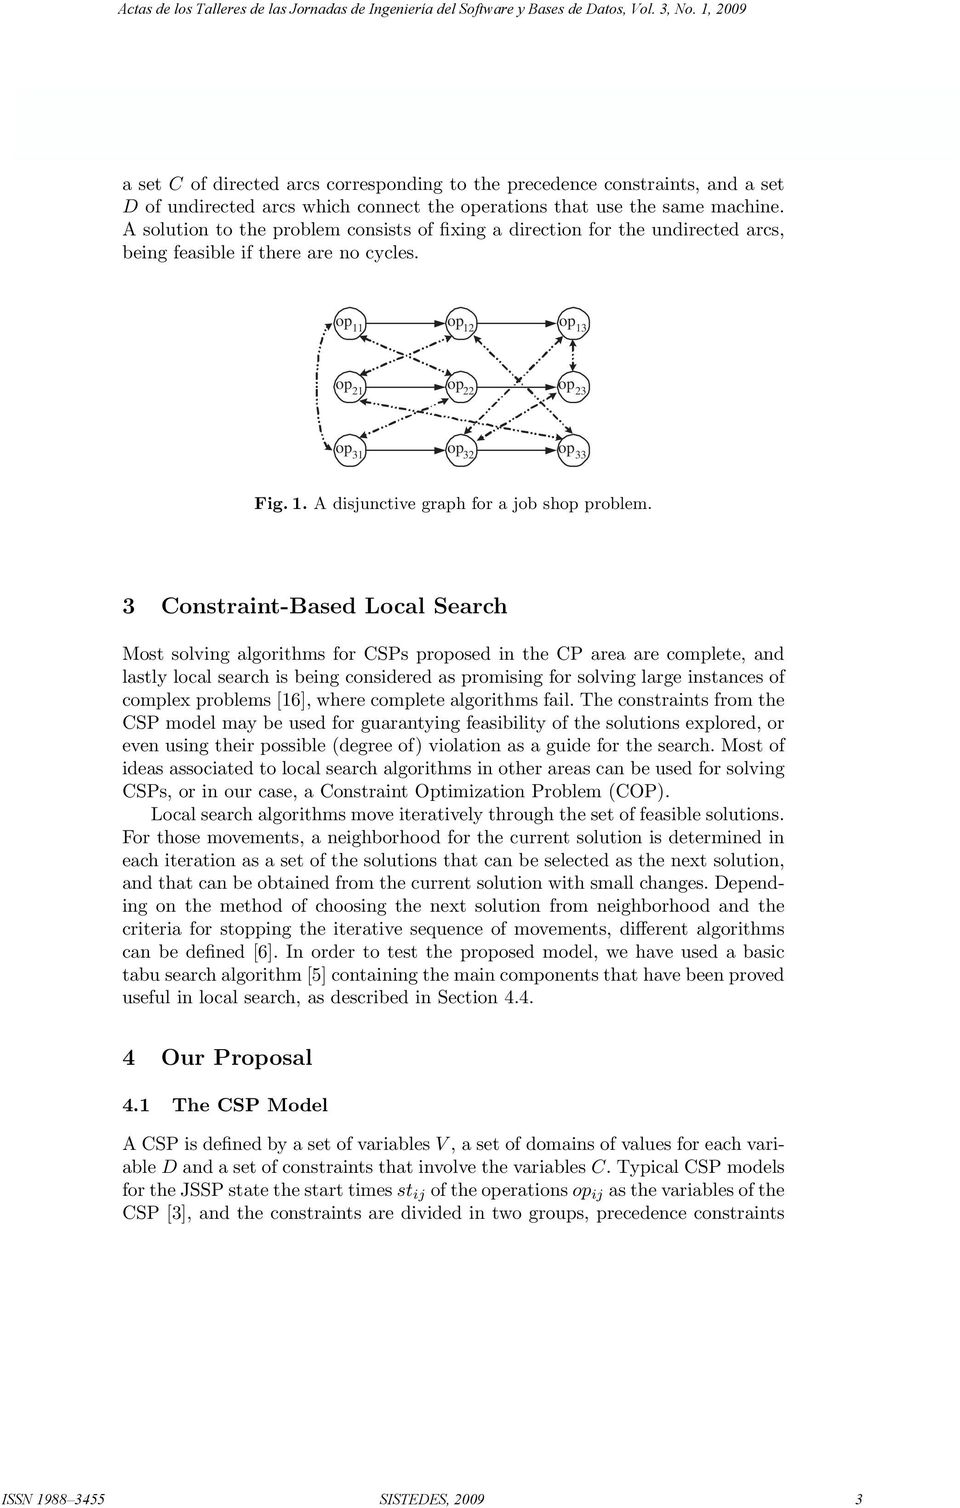 3 Constraint-Based Local Search Most solving algorithms for CSPs proposed in the CP area are complete, and lastly local search is being considered as promising for solving large instances of complex